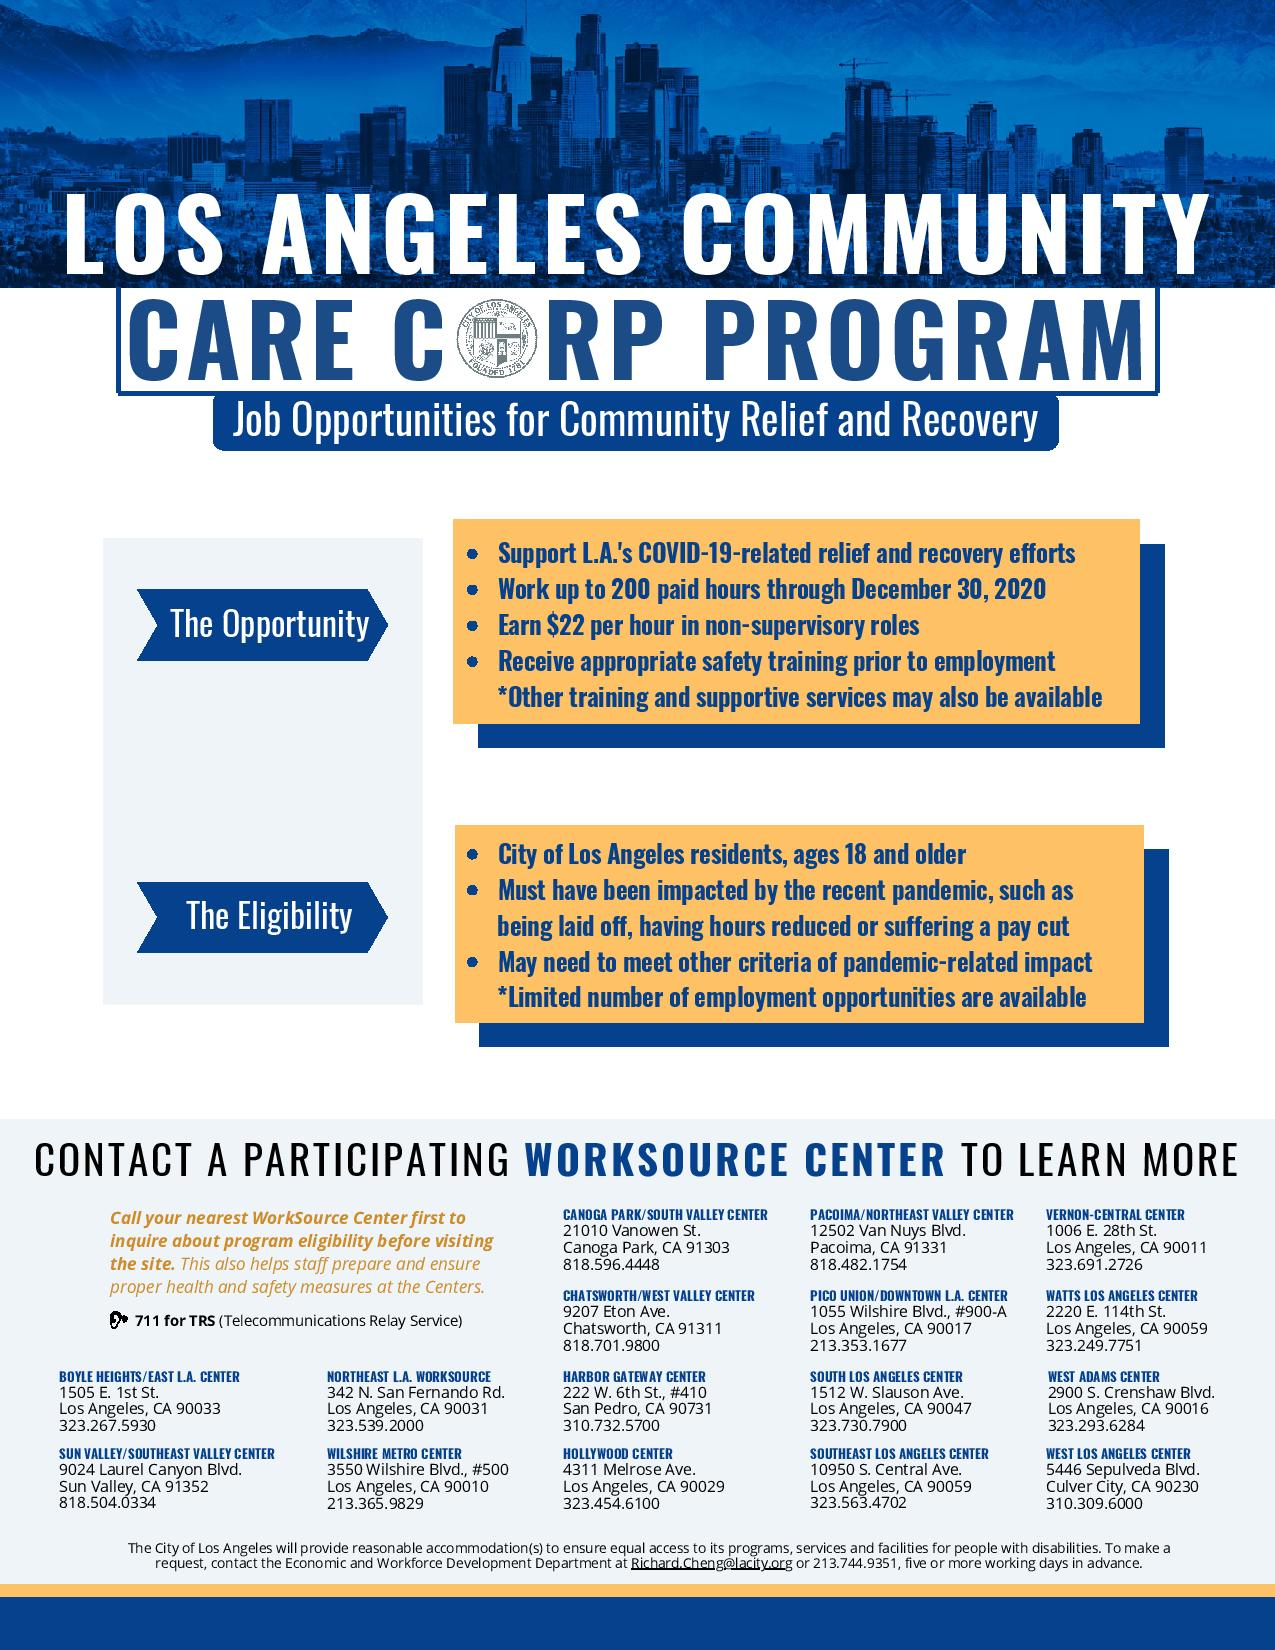 Job Opportunities for Community Relief and Recovery